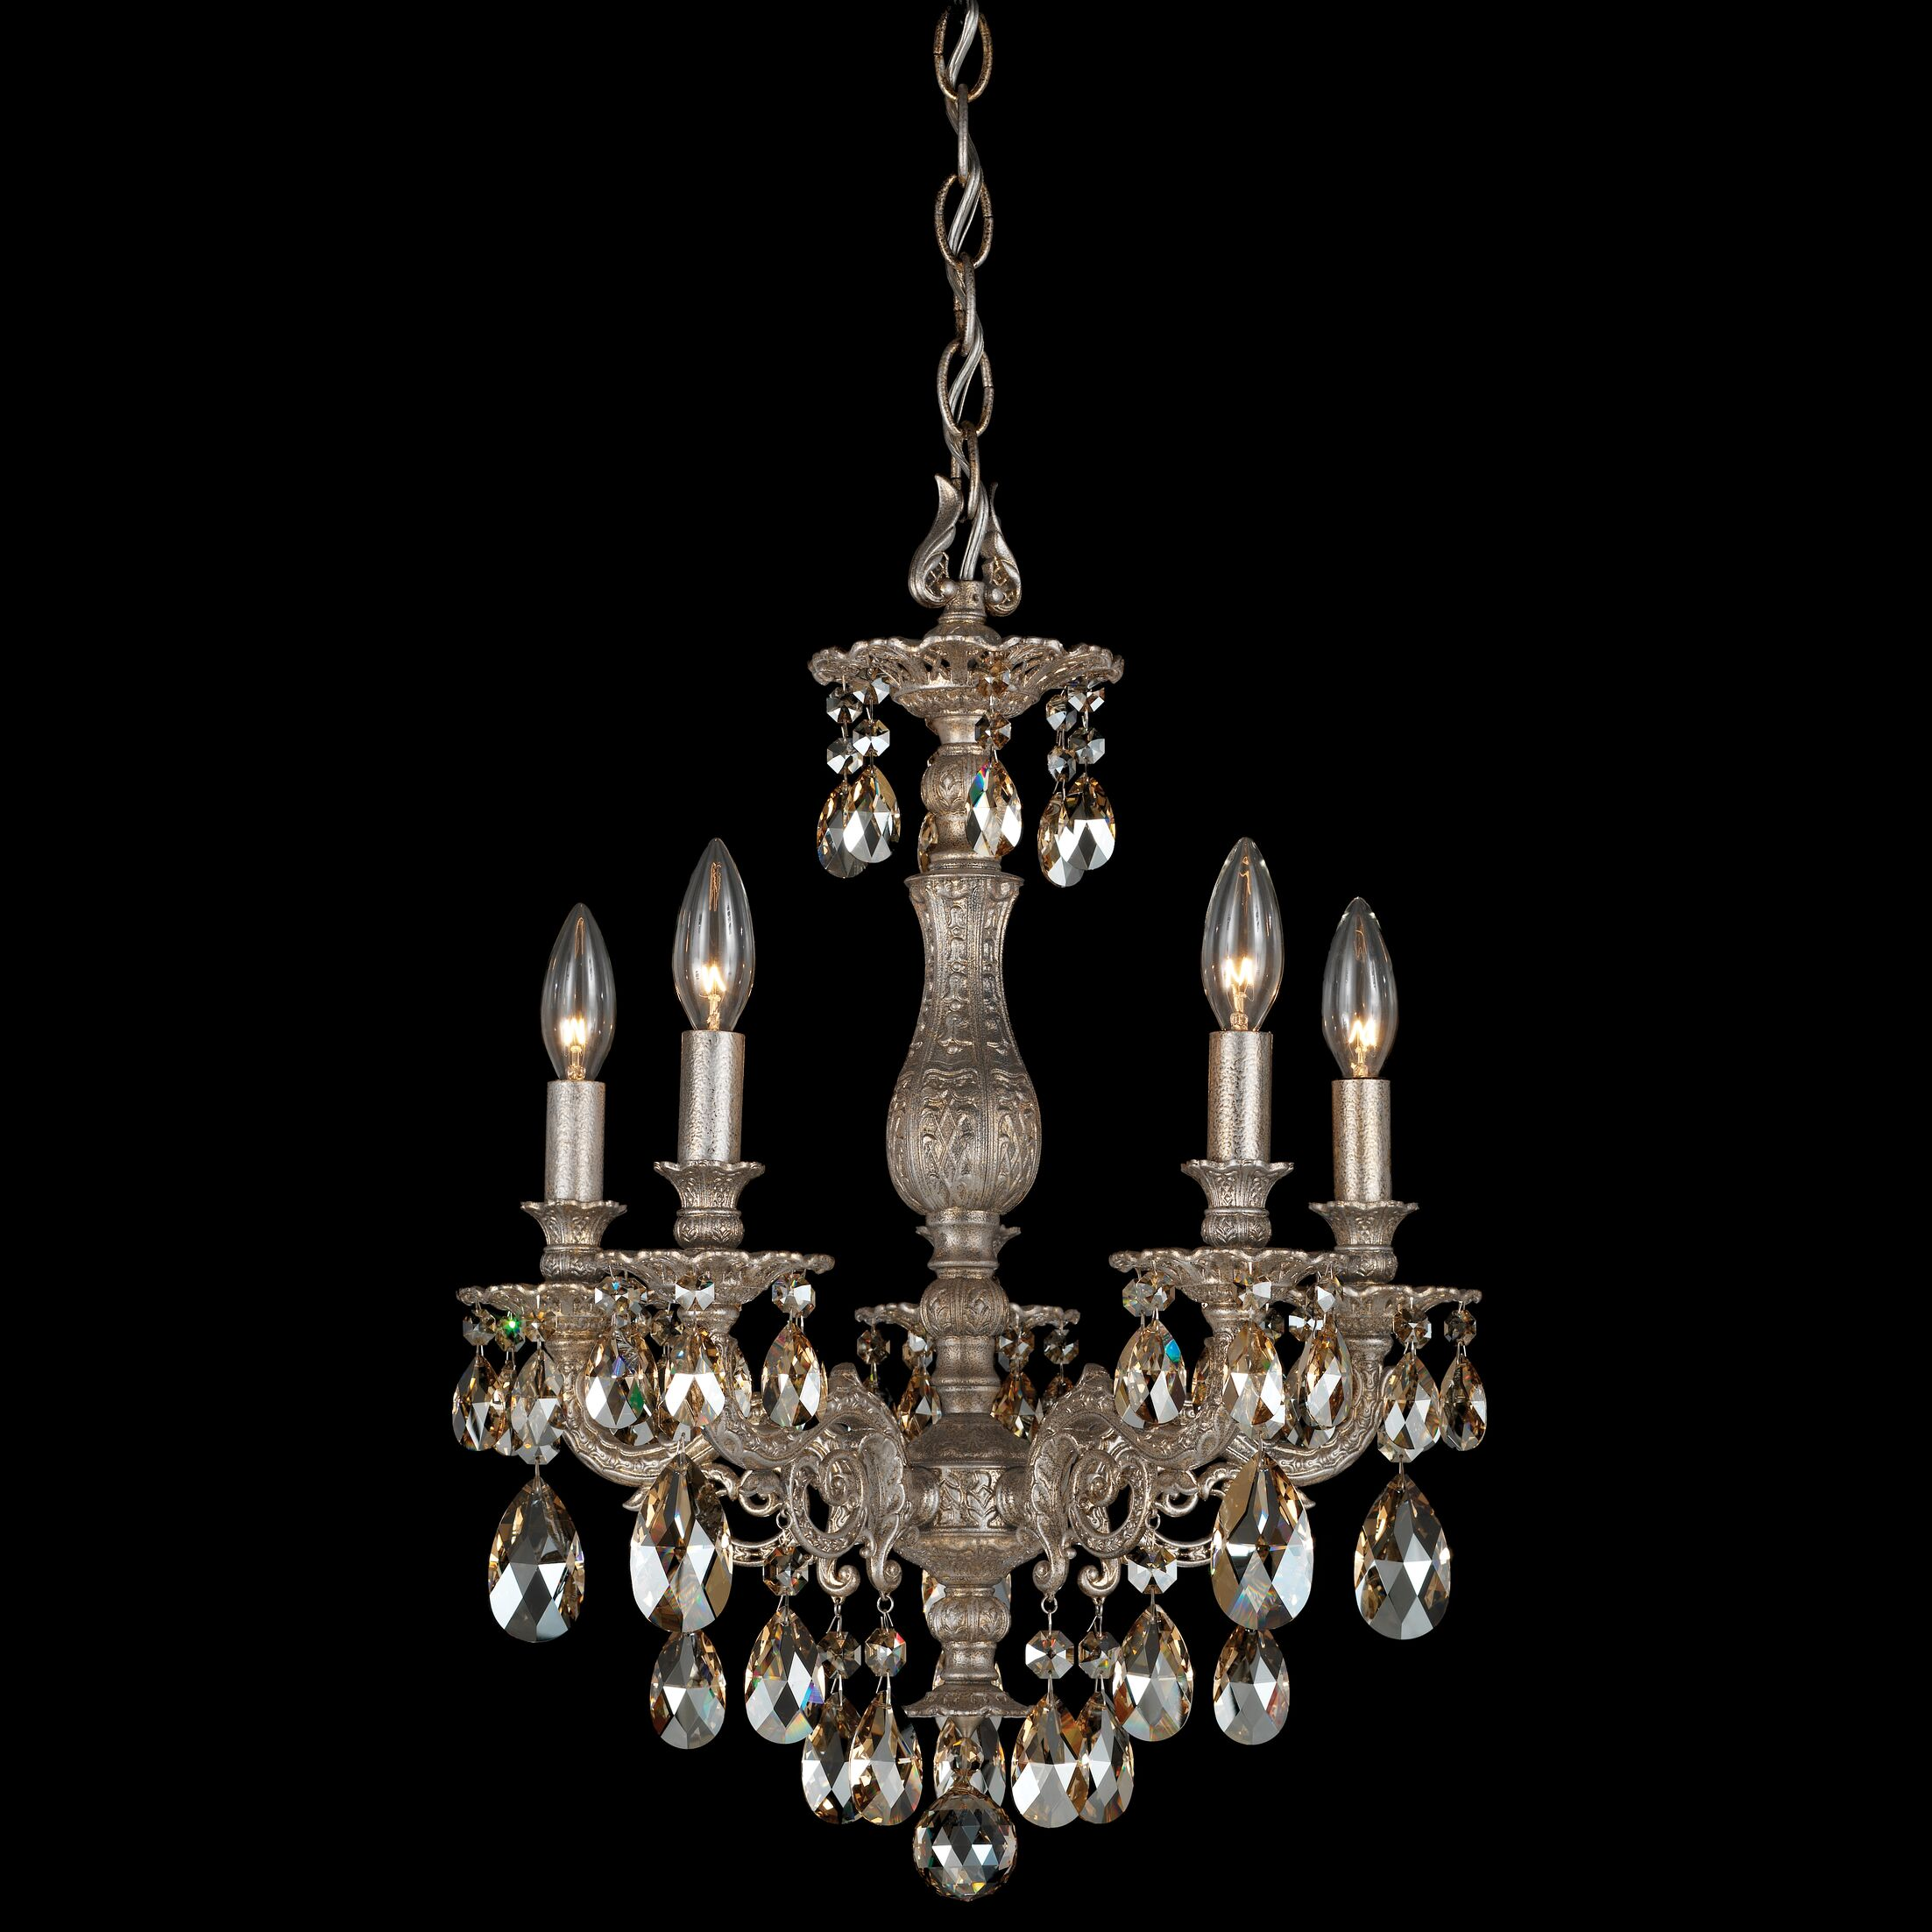 Milano 5-Light Chandelier Finish: Antique Silver, Crystal Color: Strass Silver Shade